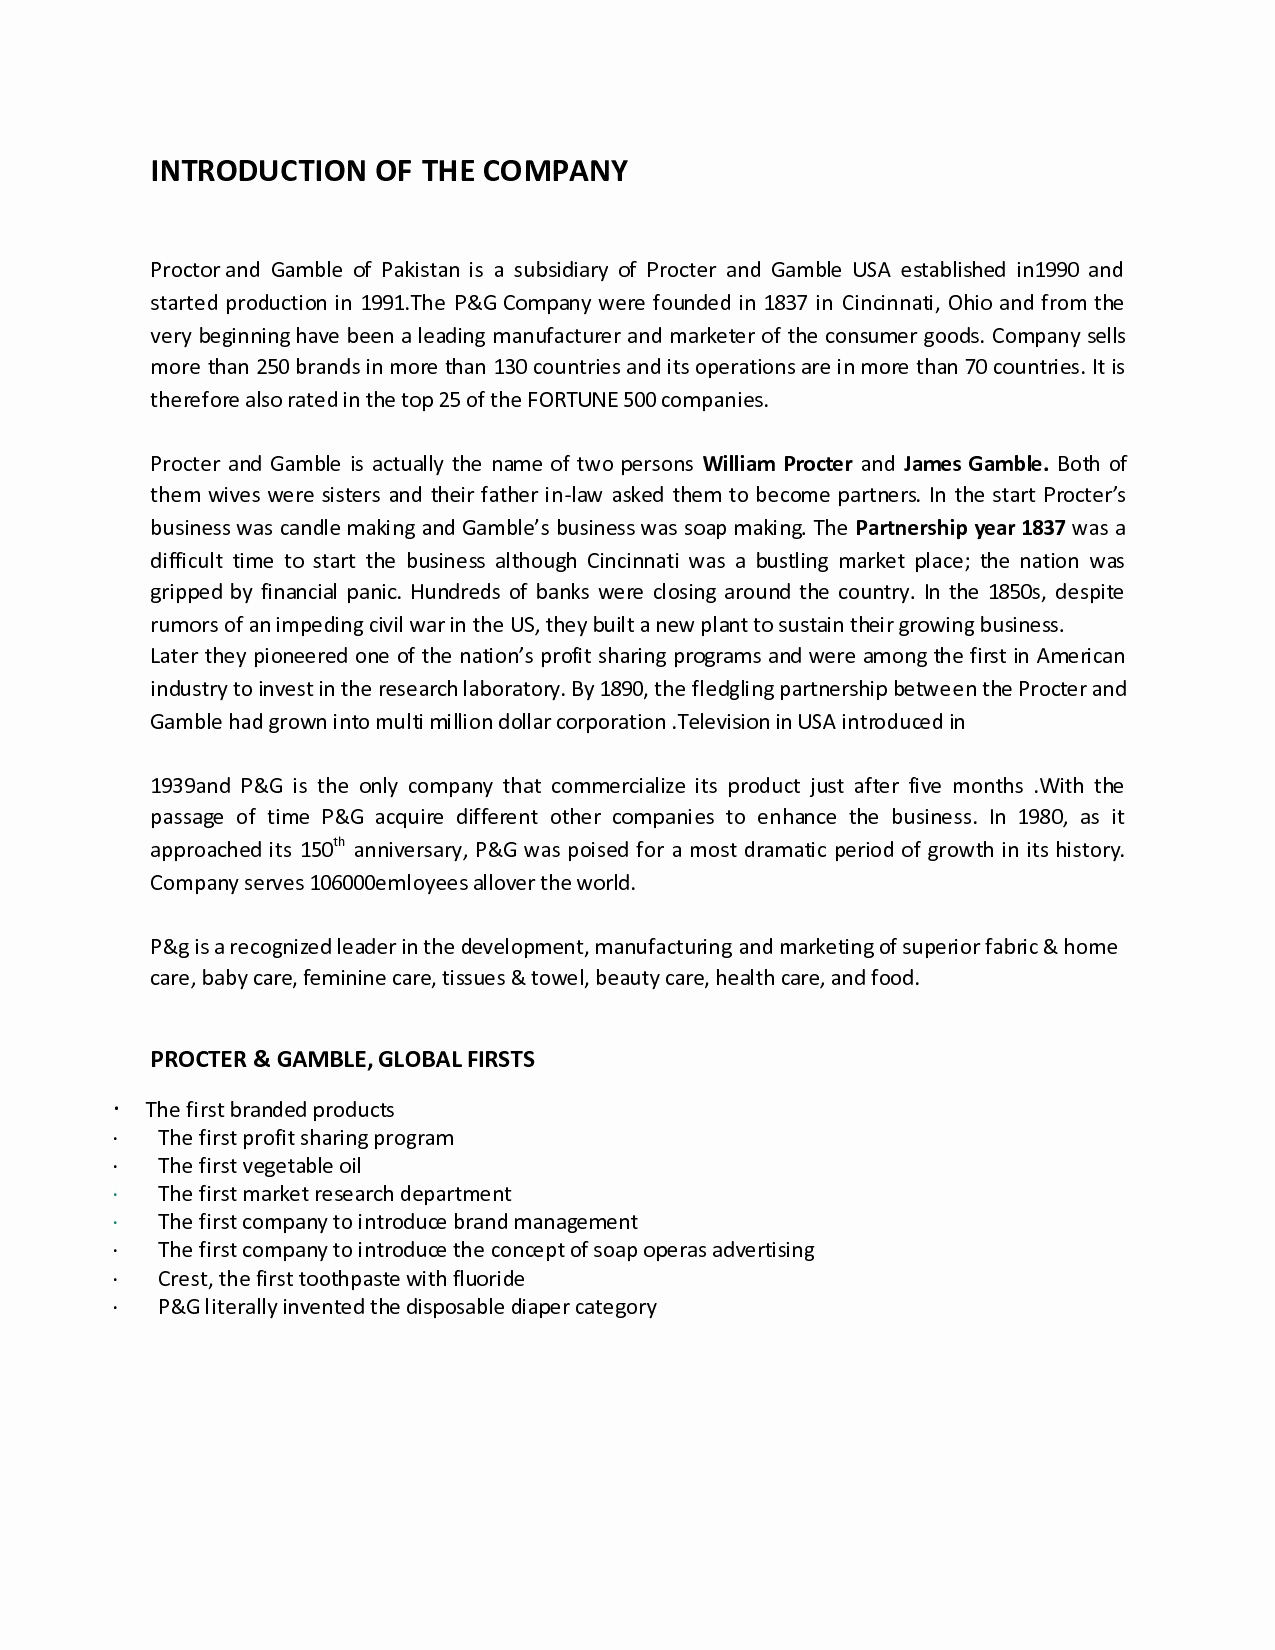 Corporate Resolution Letter Template - Sample Email Cover Letter with Resume Unique Cover Letter Template